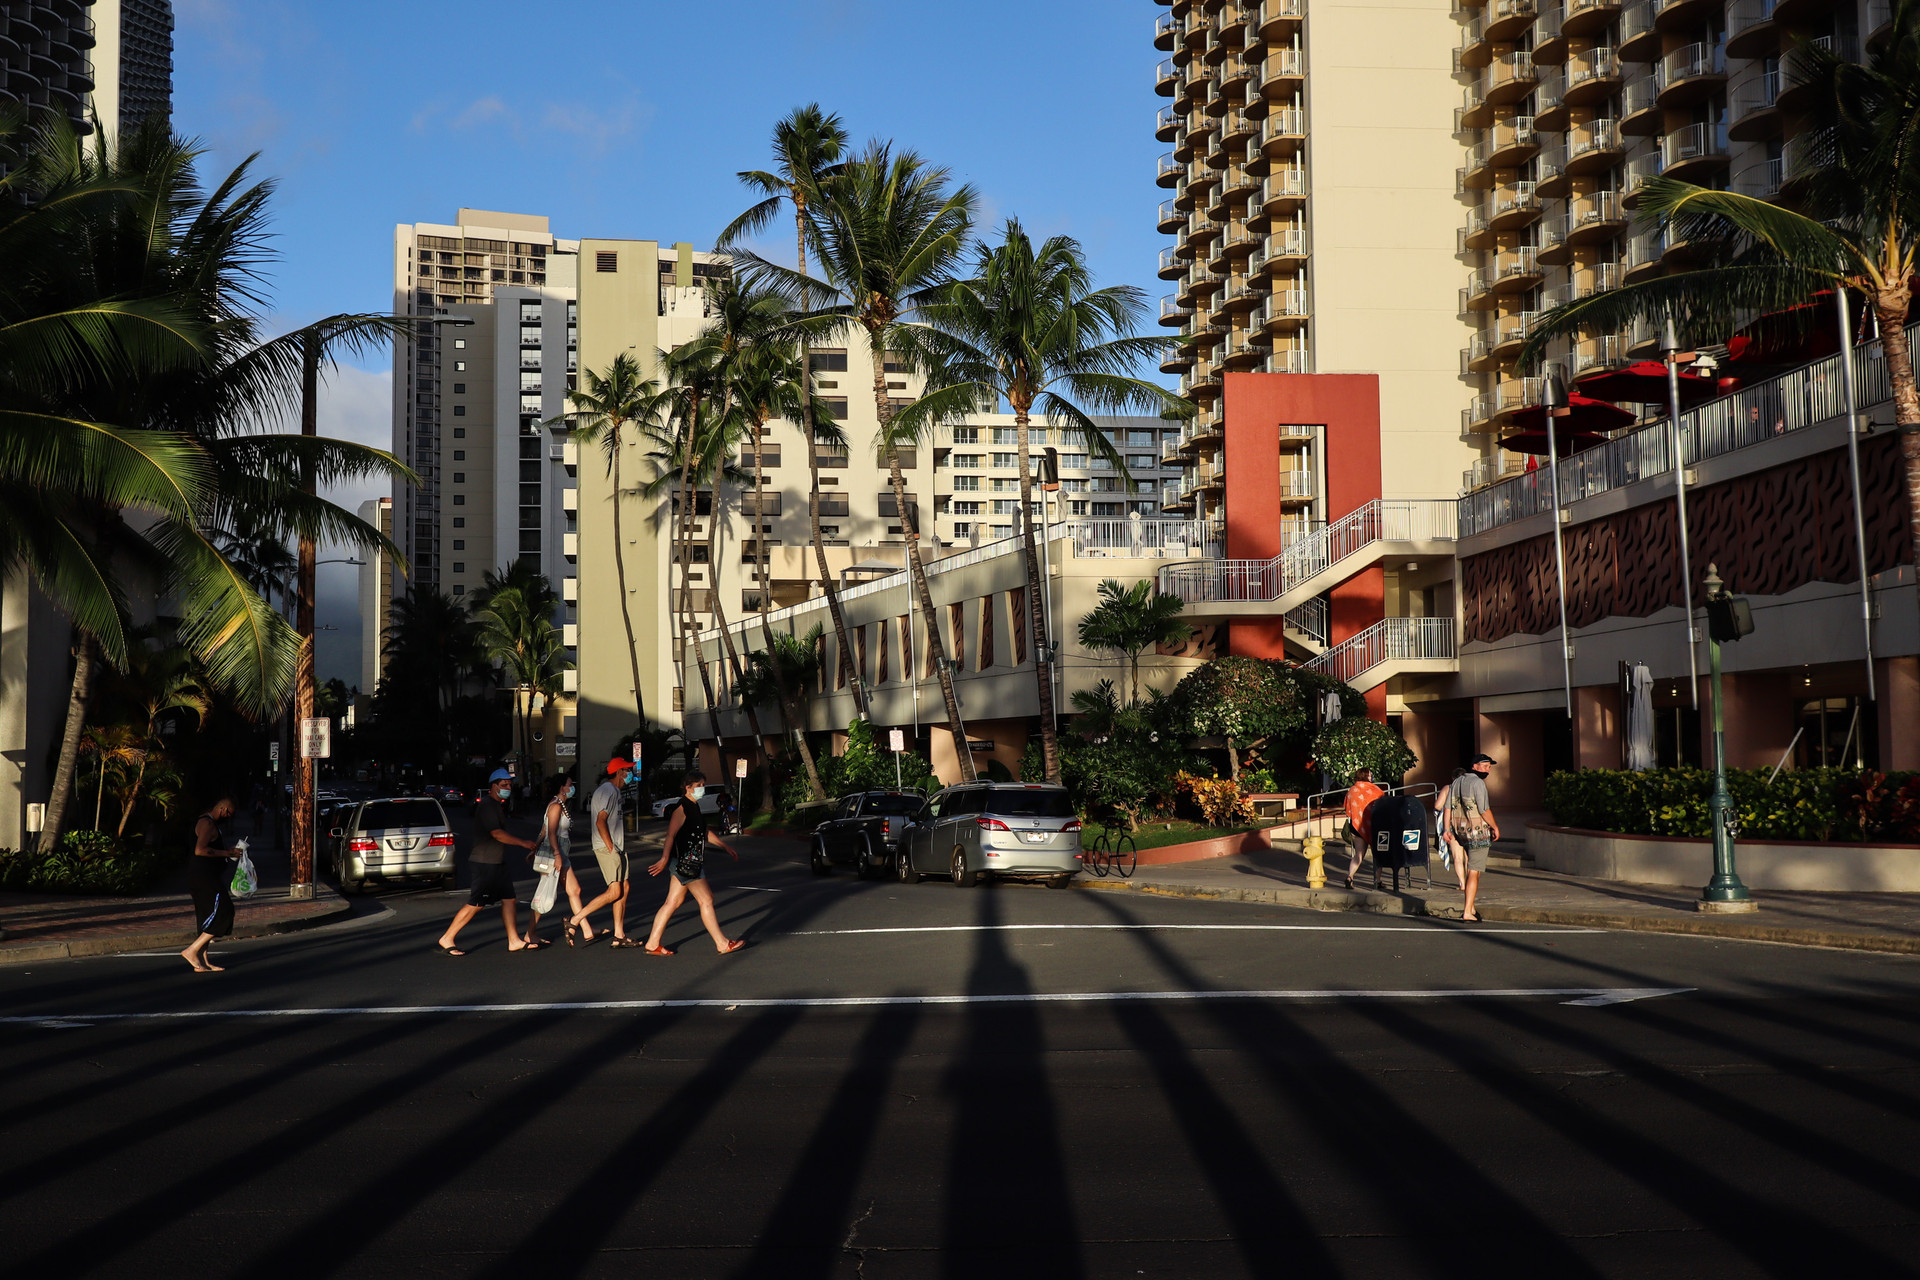 People wearing mask cross the road at Waikiki, Honolulu on November 20, 2020.